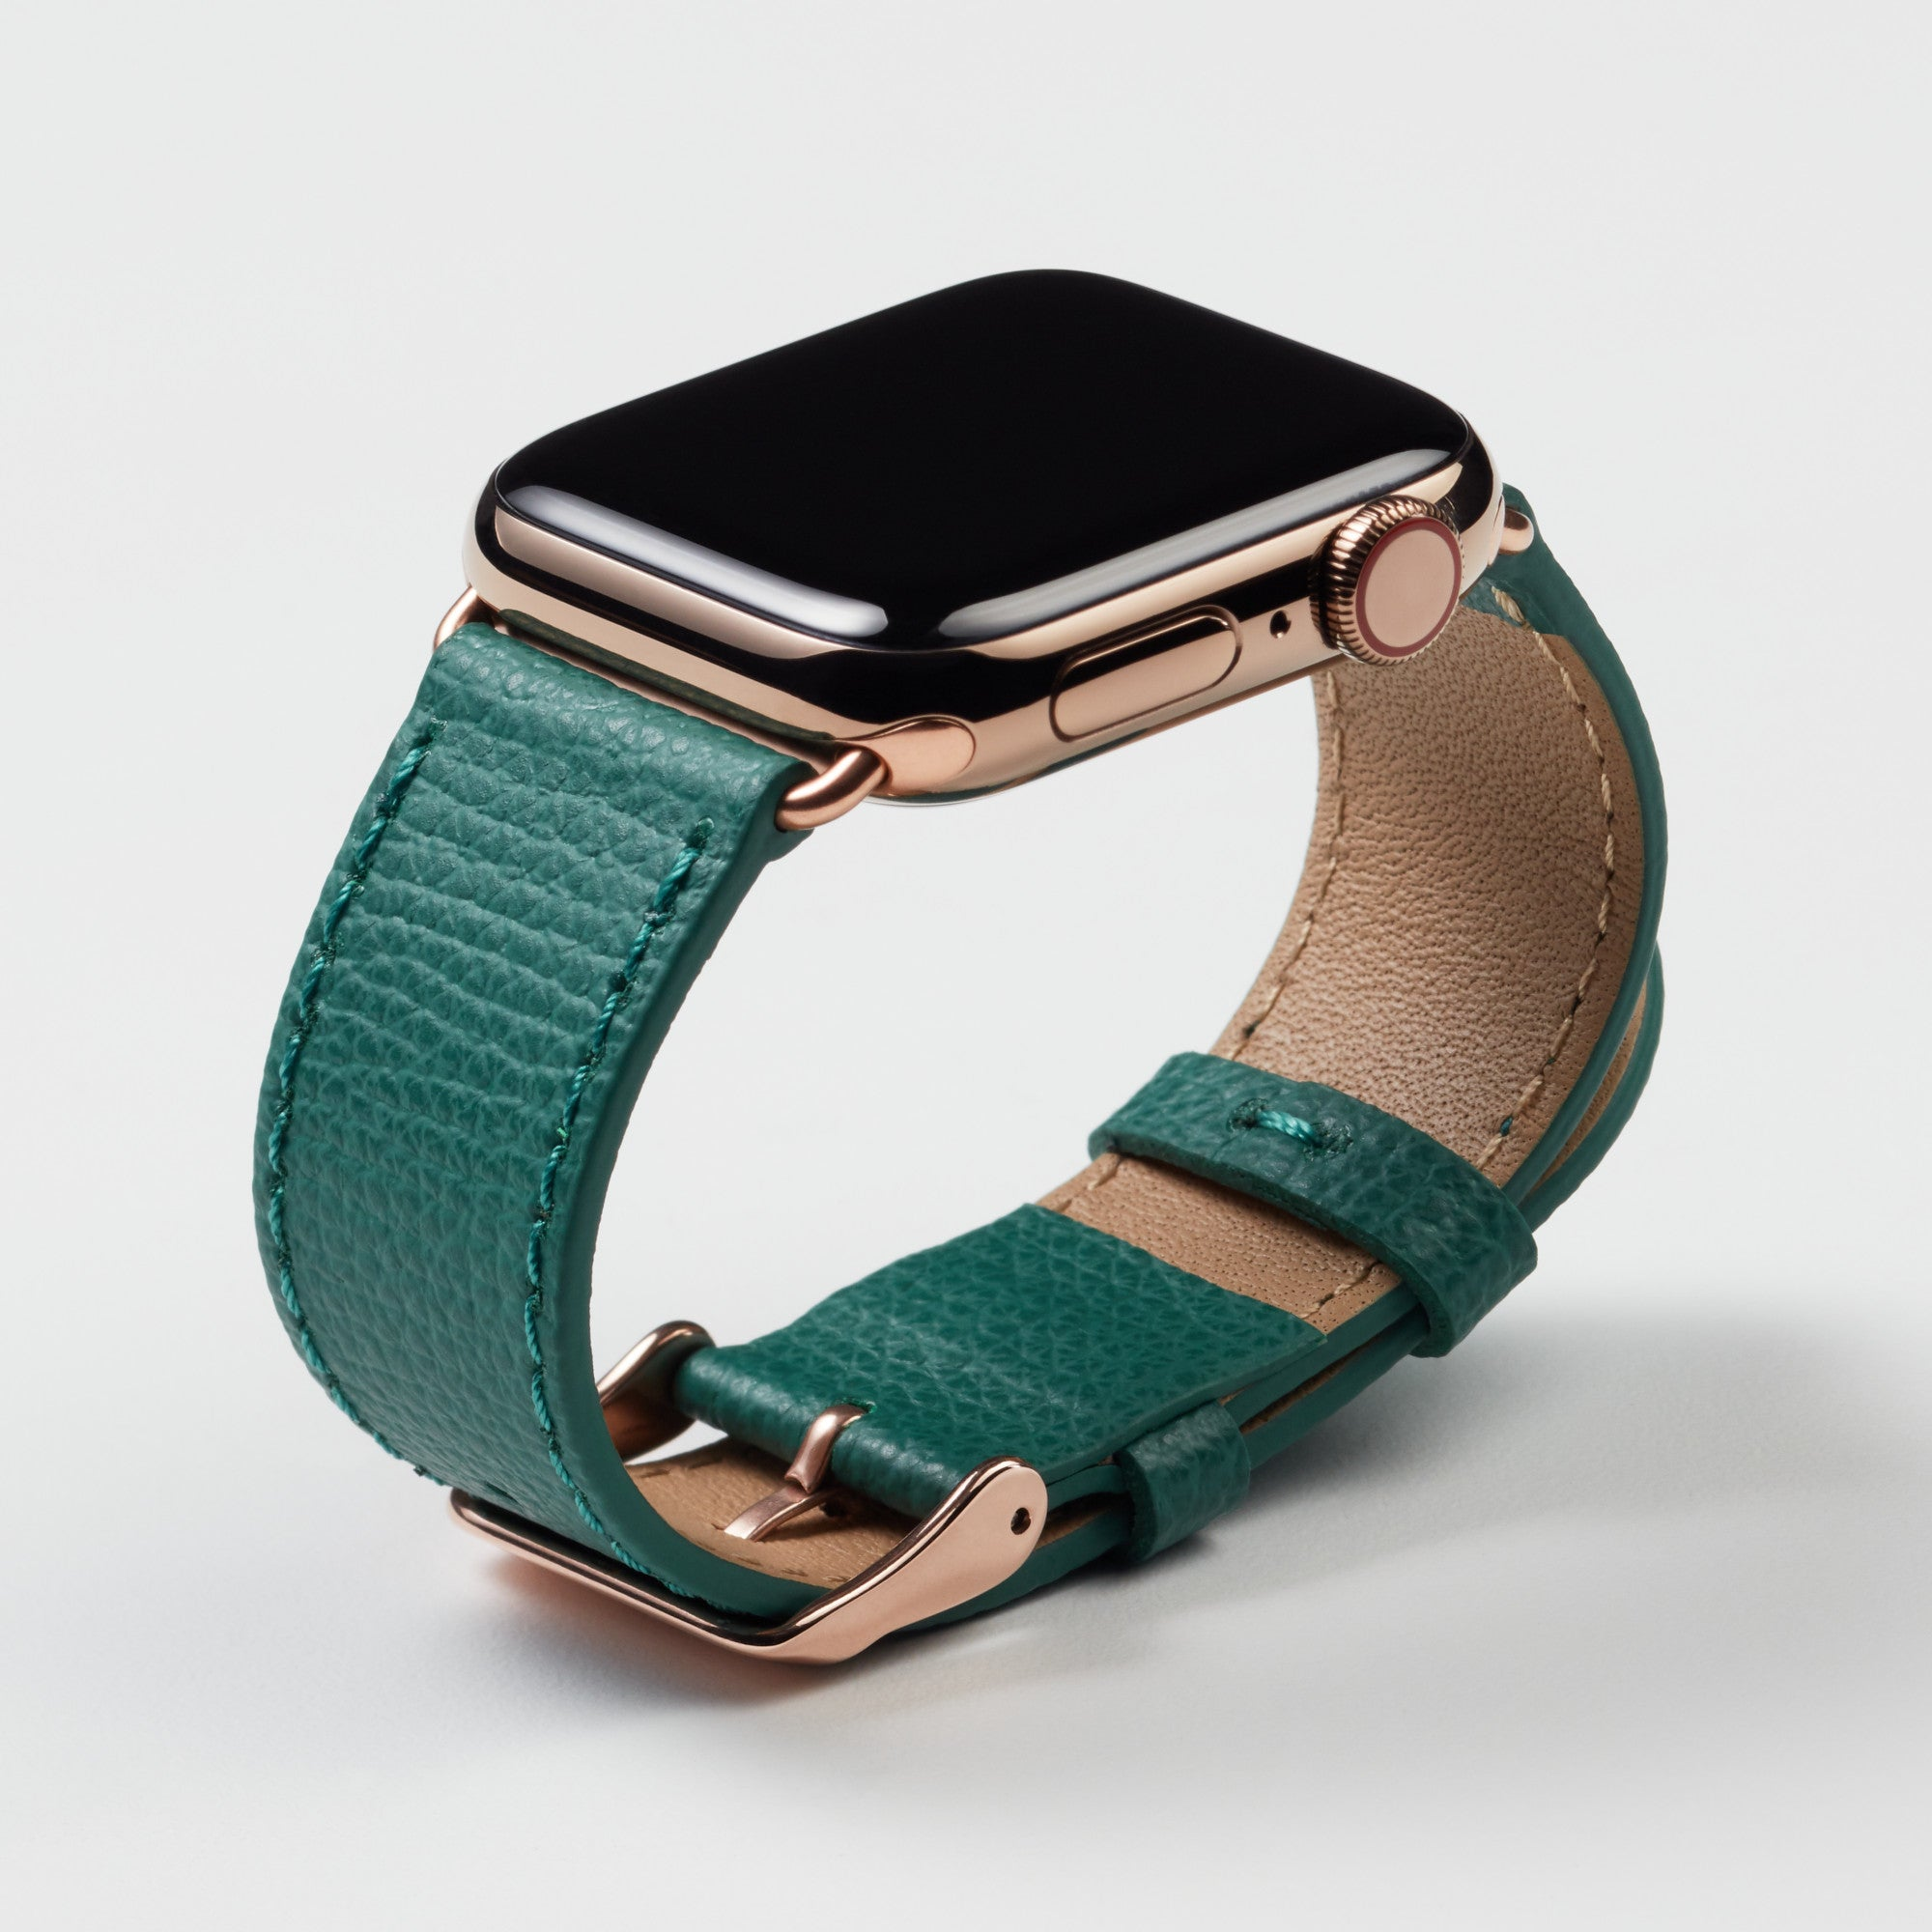 Pin and Buckle Apple Watch Bands - Epsom - Leather Apple Watch Band - Forest Green - Gold